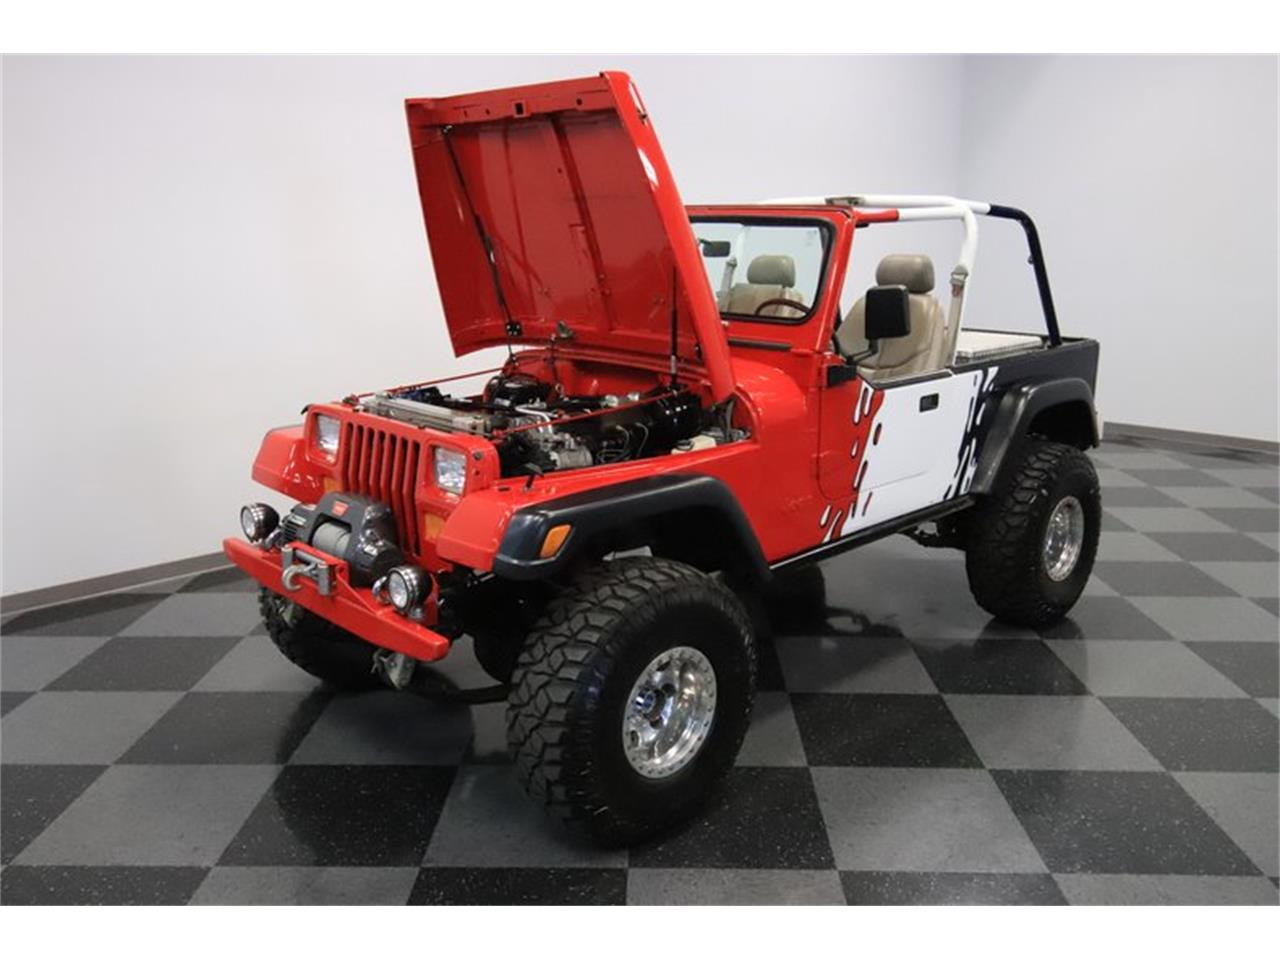 Large Picture of '83 CJ8 Scrambler - $36,995.00 - Q5HM